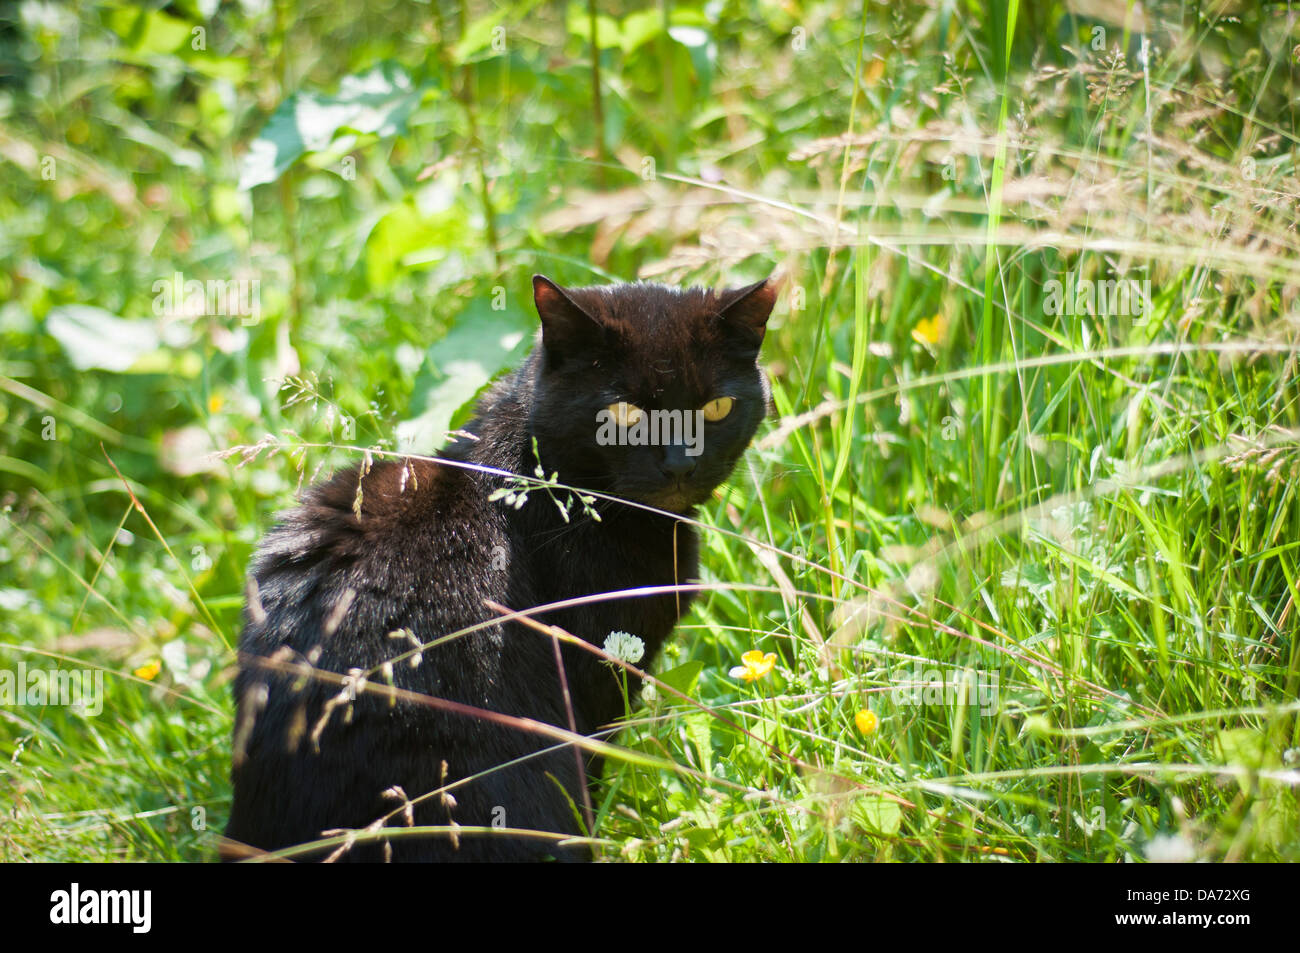 A black cat with piercing yellow eyes sits staring in a garden of green grass in summer - Stock Image